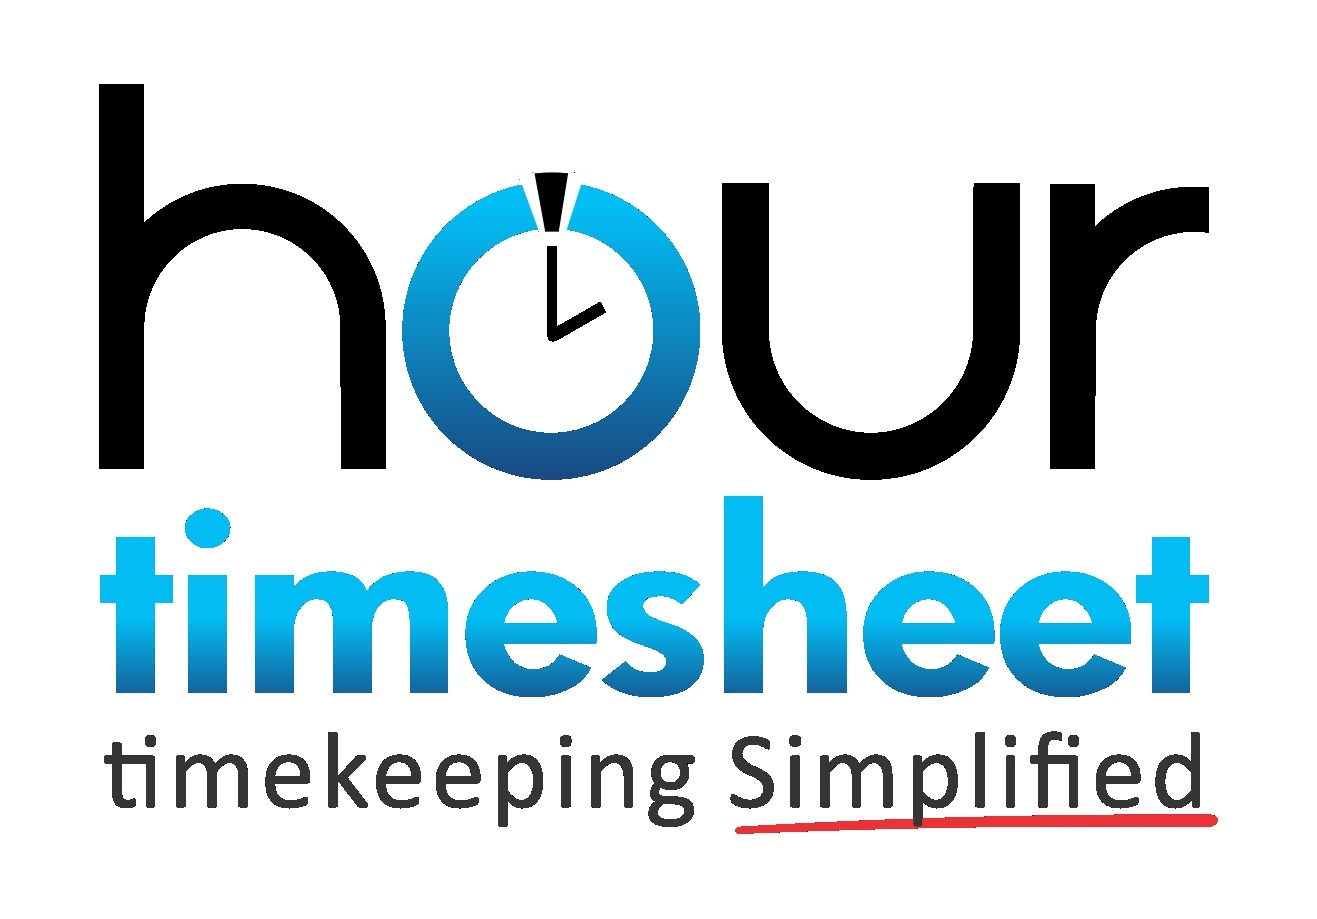 Hour Time Sheet Logo